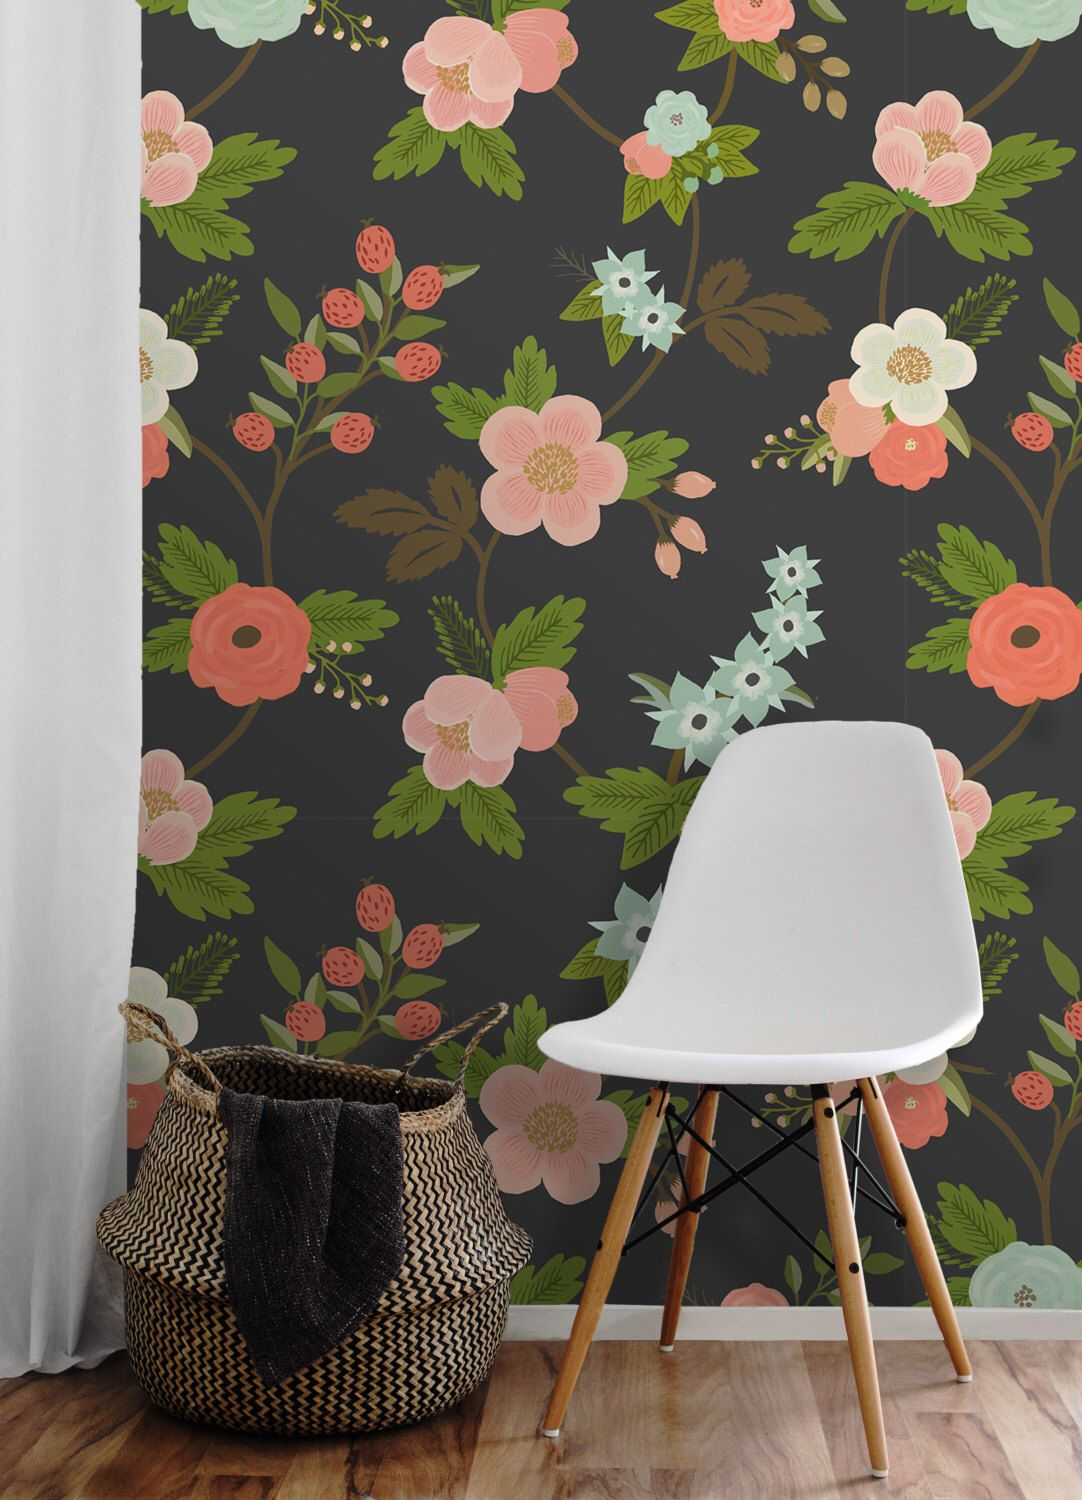 Flora • Easy to Apply Removable Peel 'n Stick Wallpaper